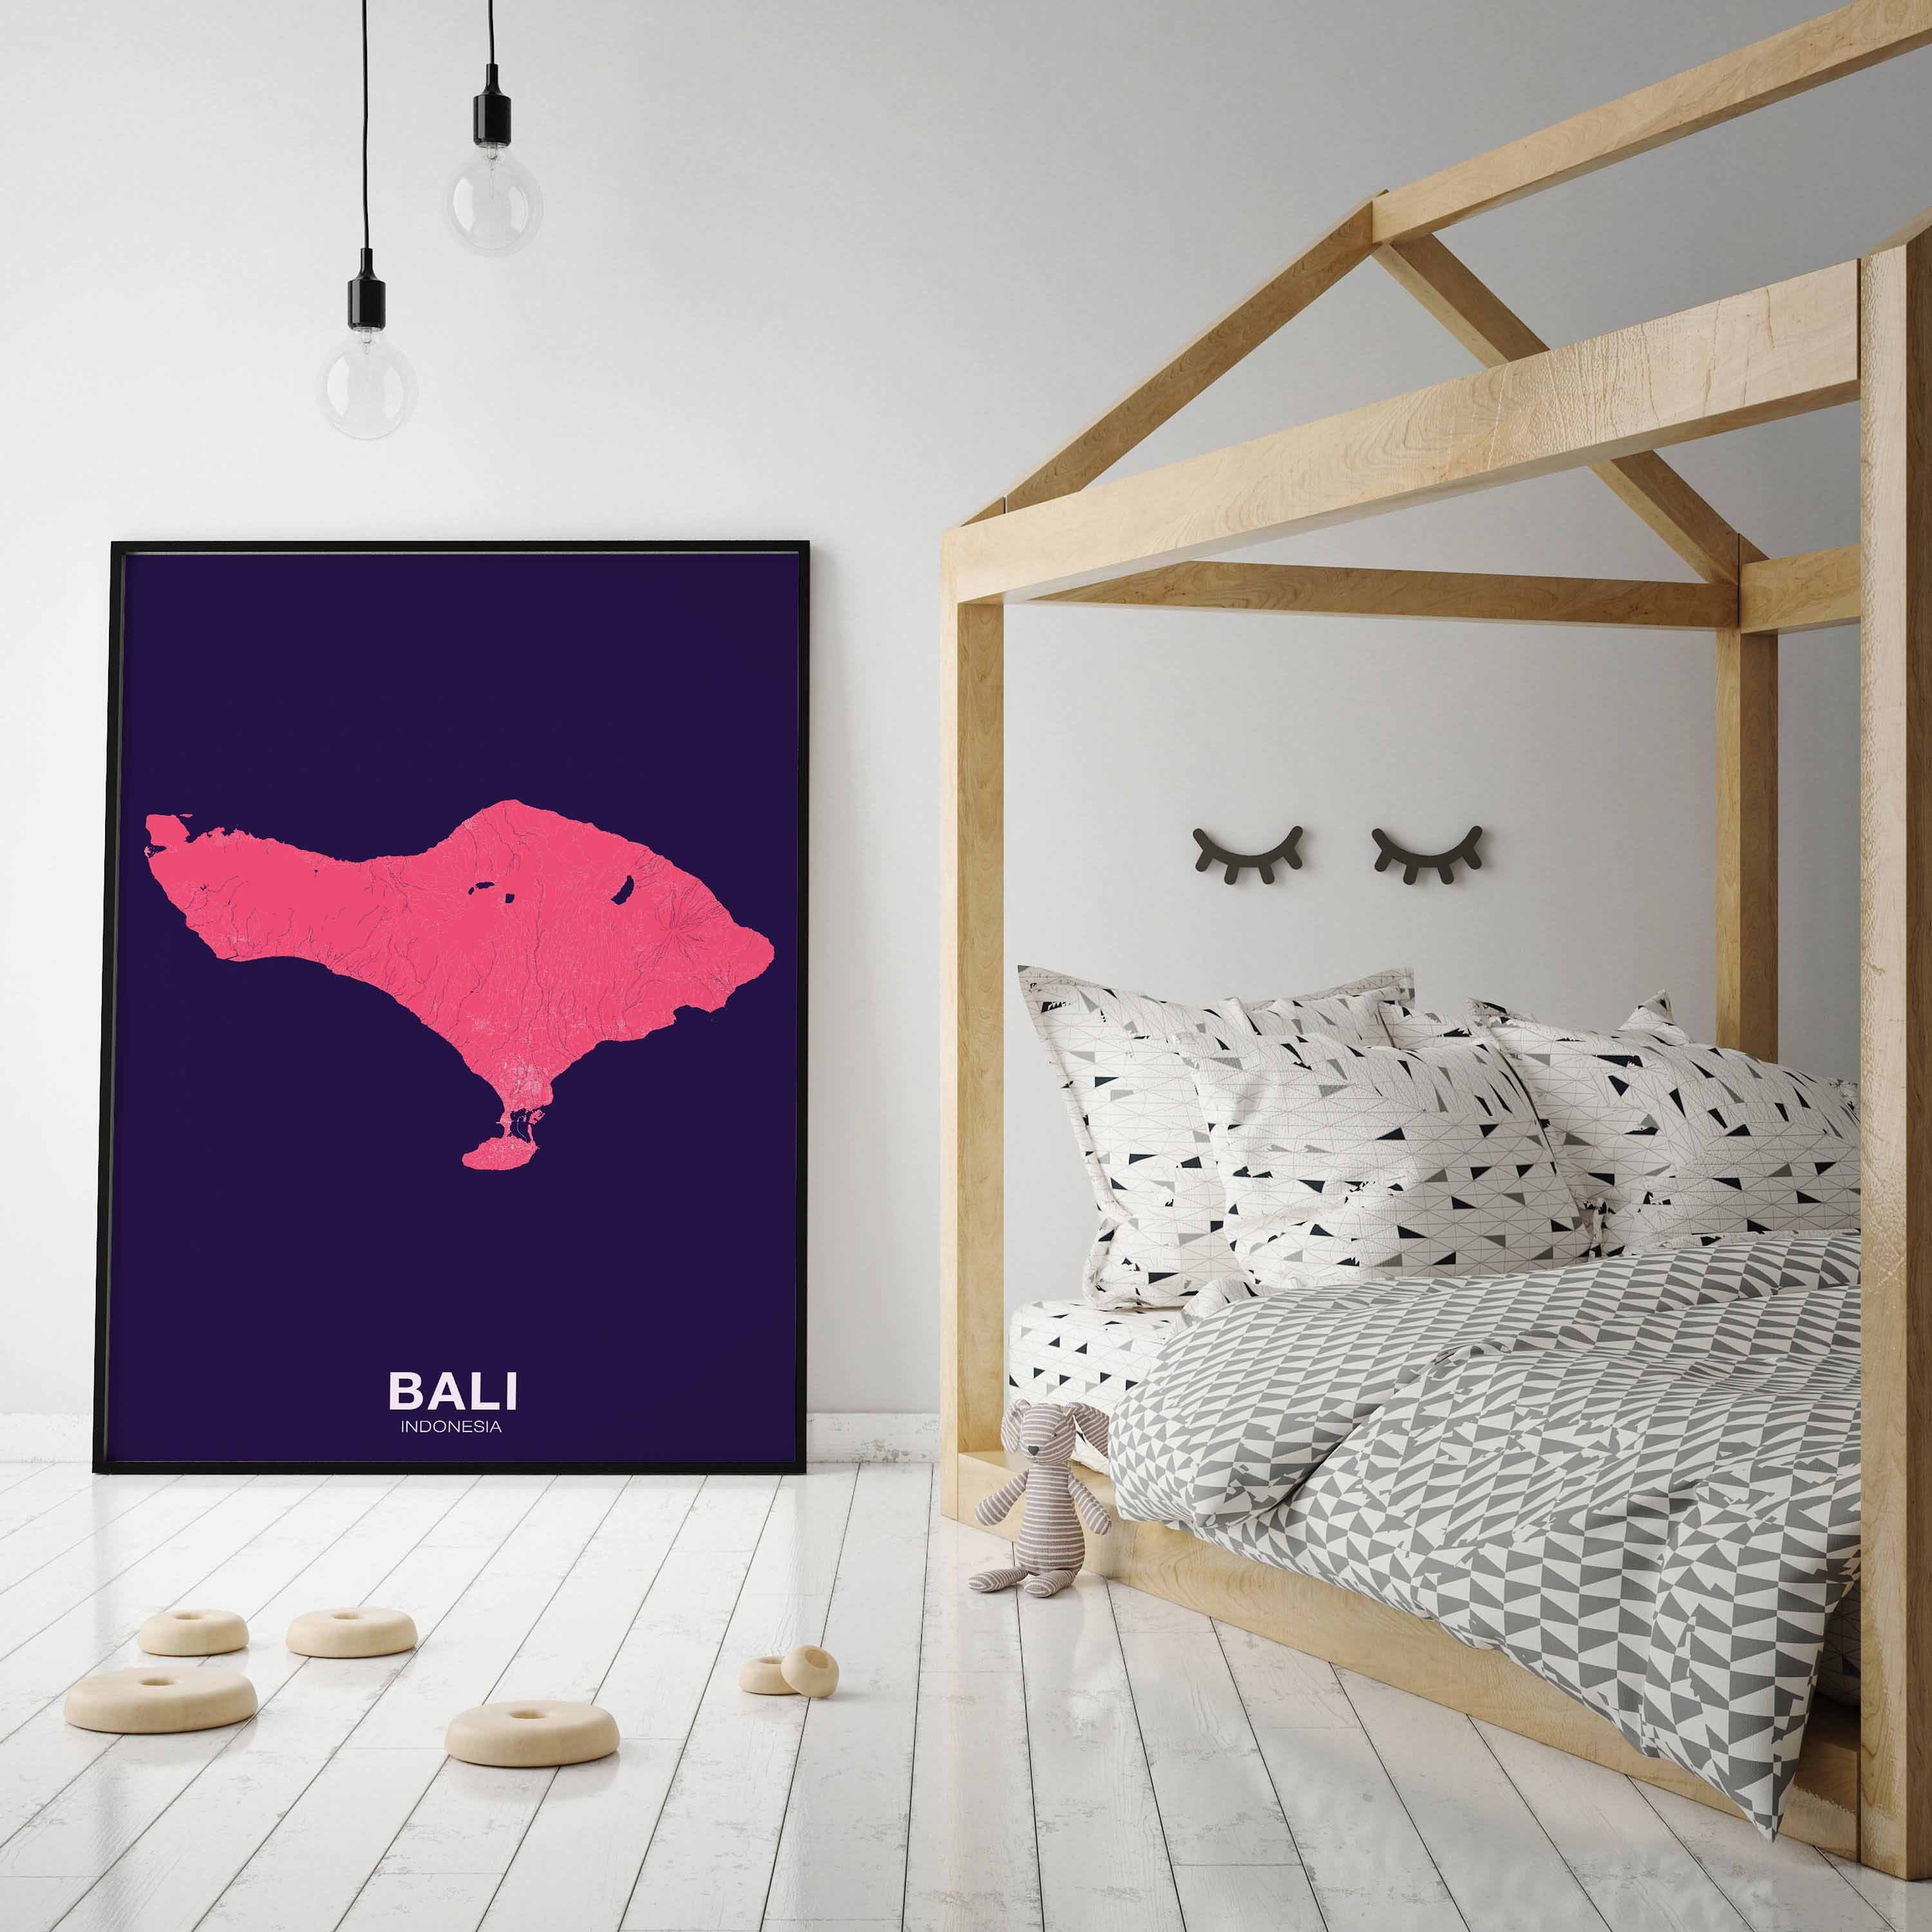 Bali Indonesia Map Poster Color Hometown City Print Modern Home Decor Office Decoration Wall Art Dorm Bedroom Gift